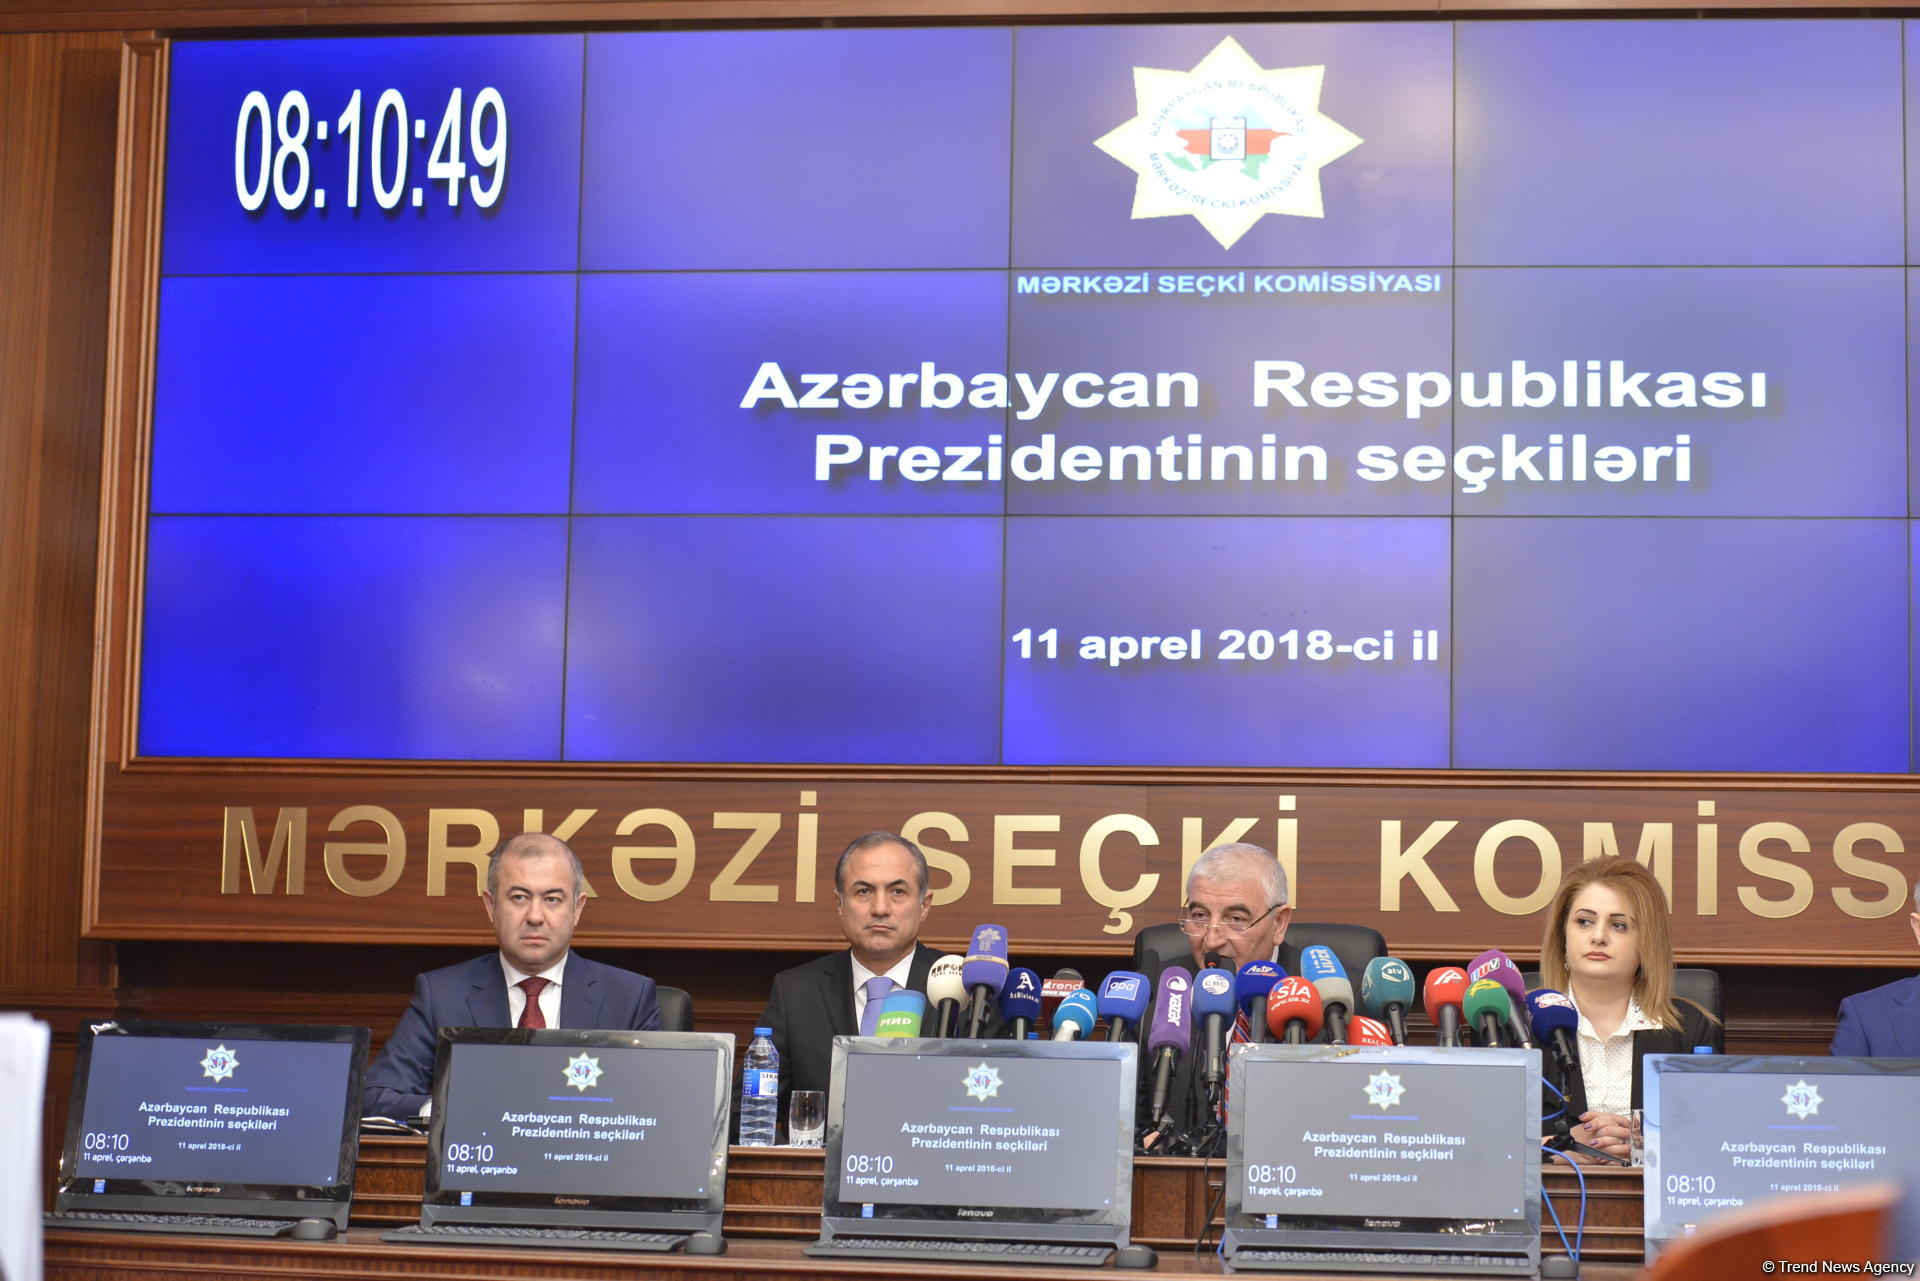 Azerbaijan's CEC chairman: No one can put pressure on voters in any form